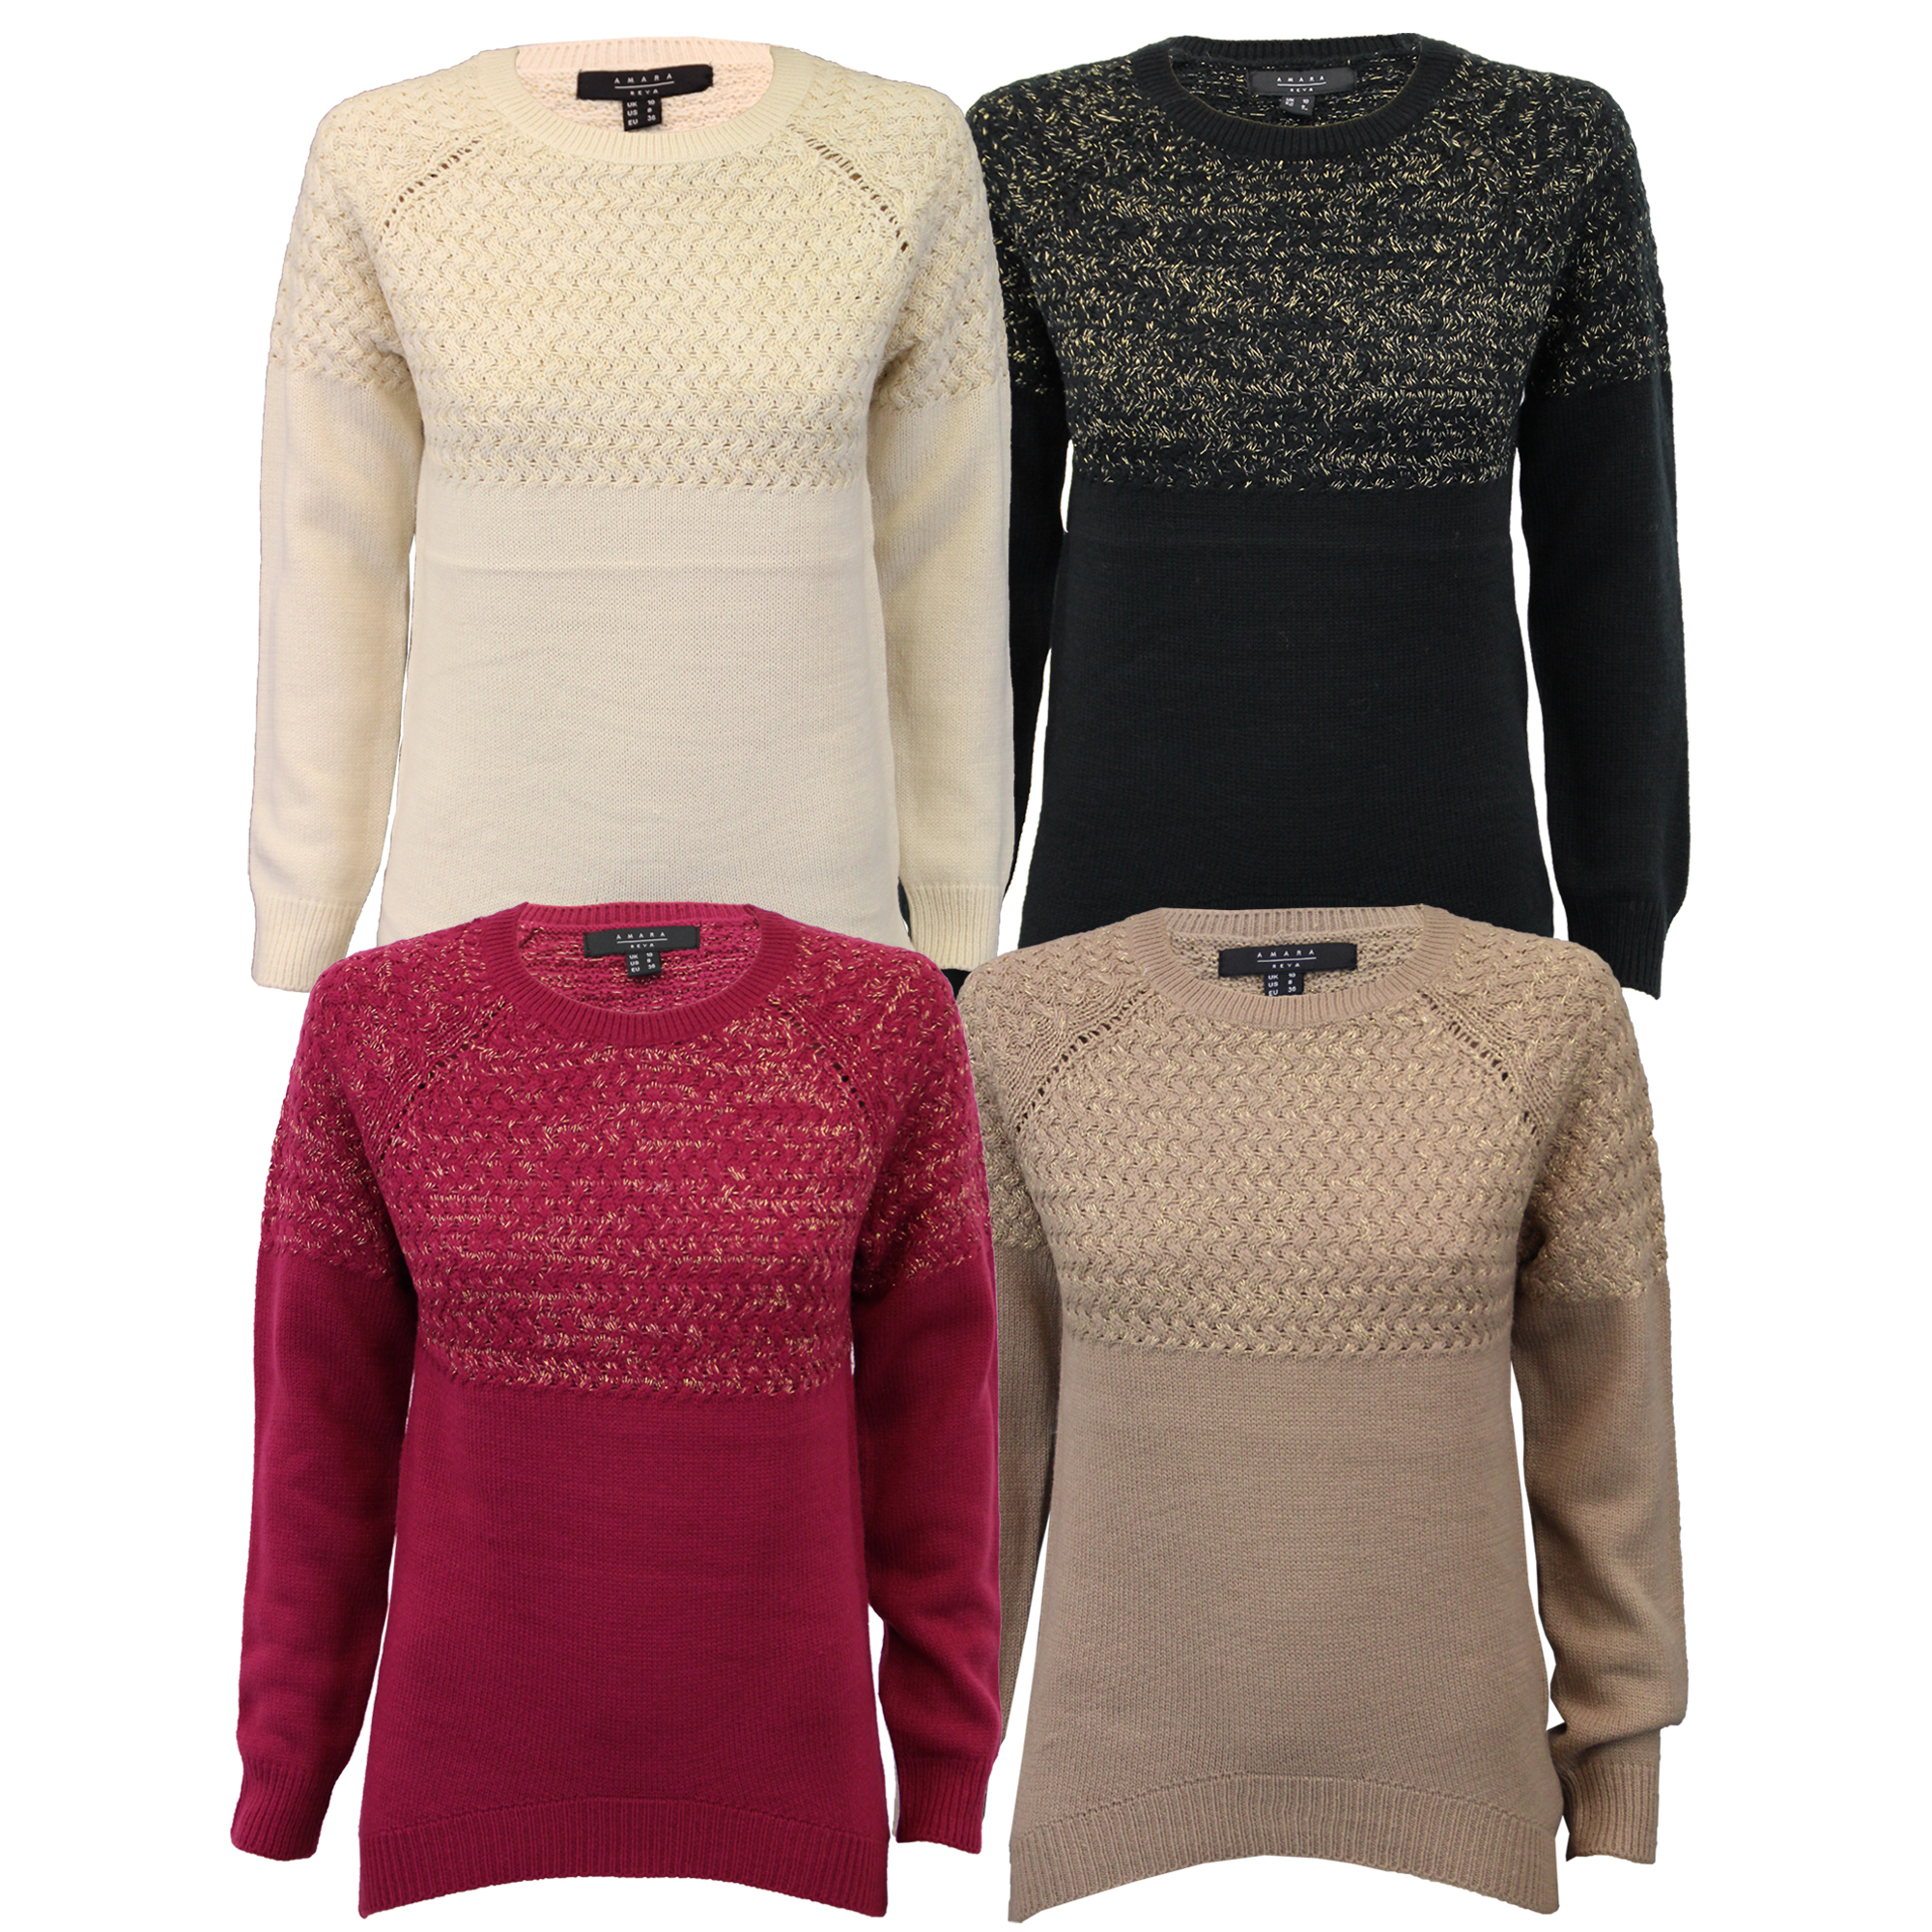 Ladies Jumpers Womens Cable Knitted Top Pullover Sweater Carnation ... 884ff11fe